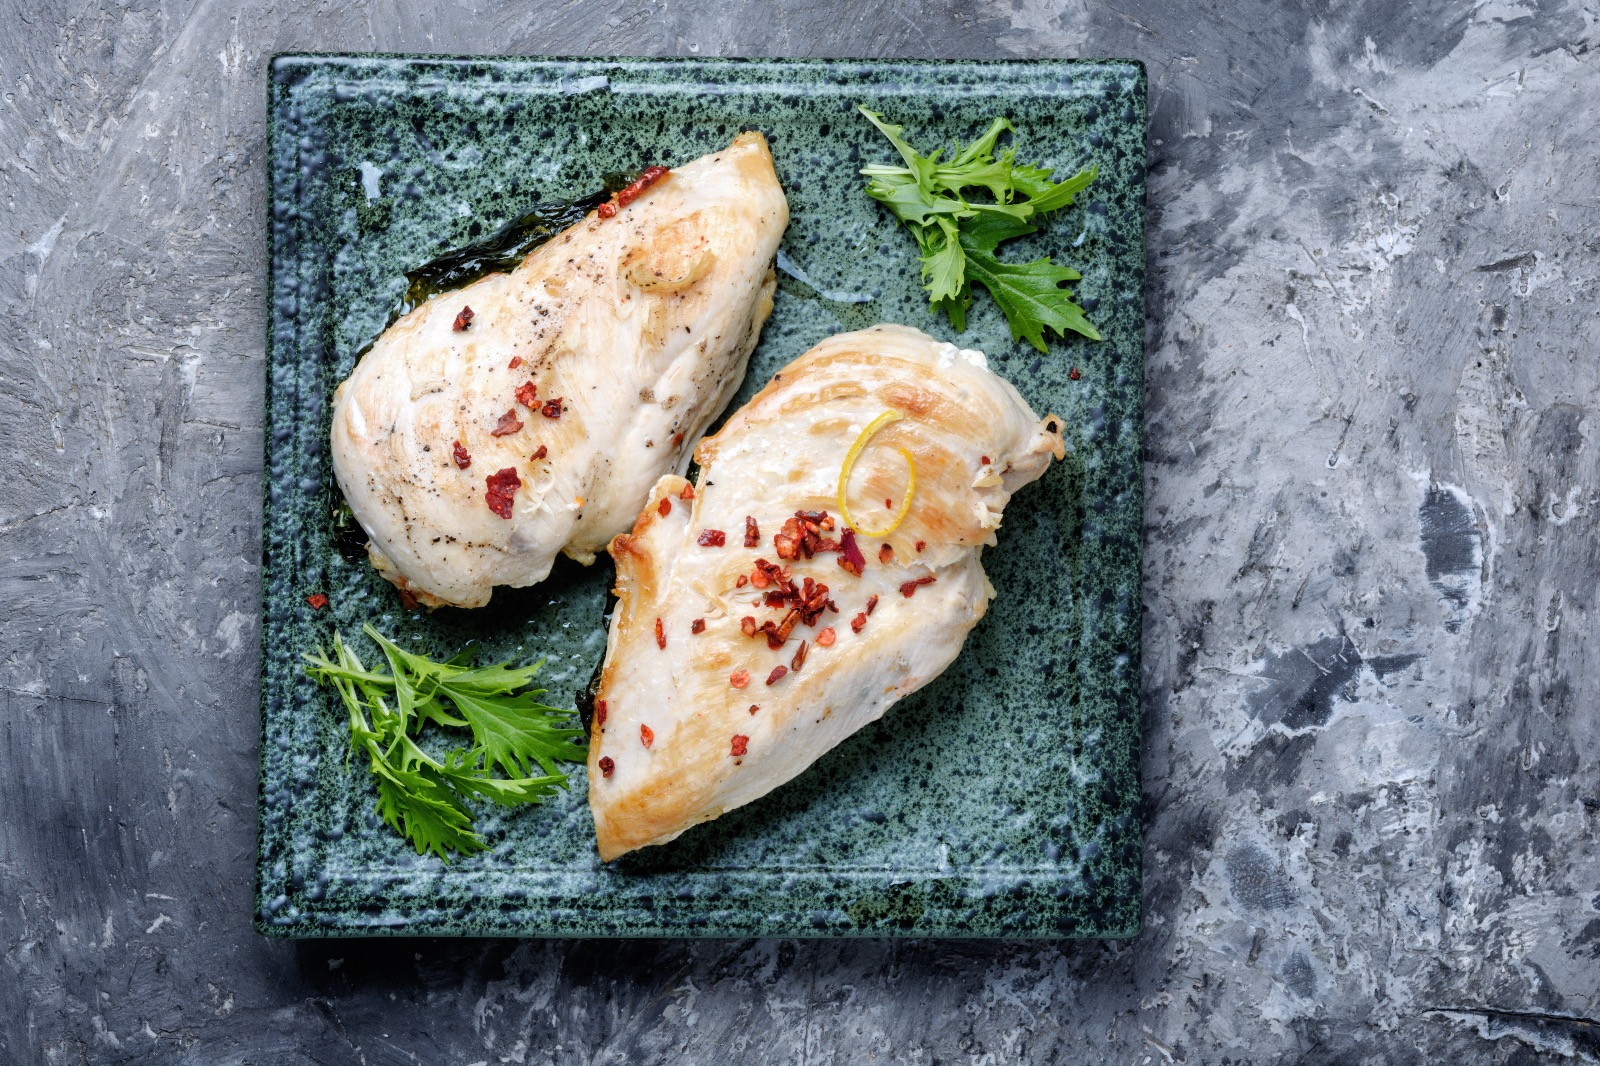 Ethically Raised, The Way Nature Intended Chicken Delivered Straight To Your Door - Beck & Bulow